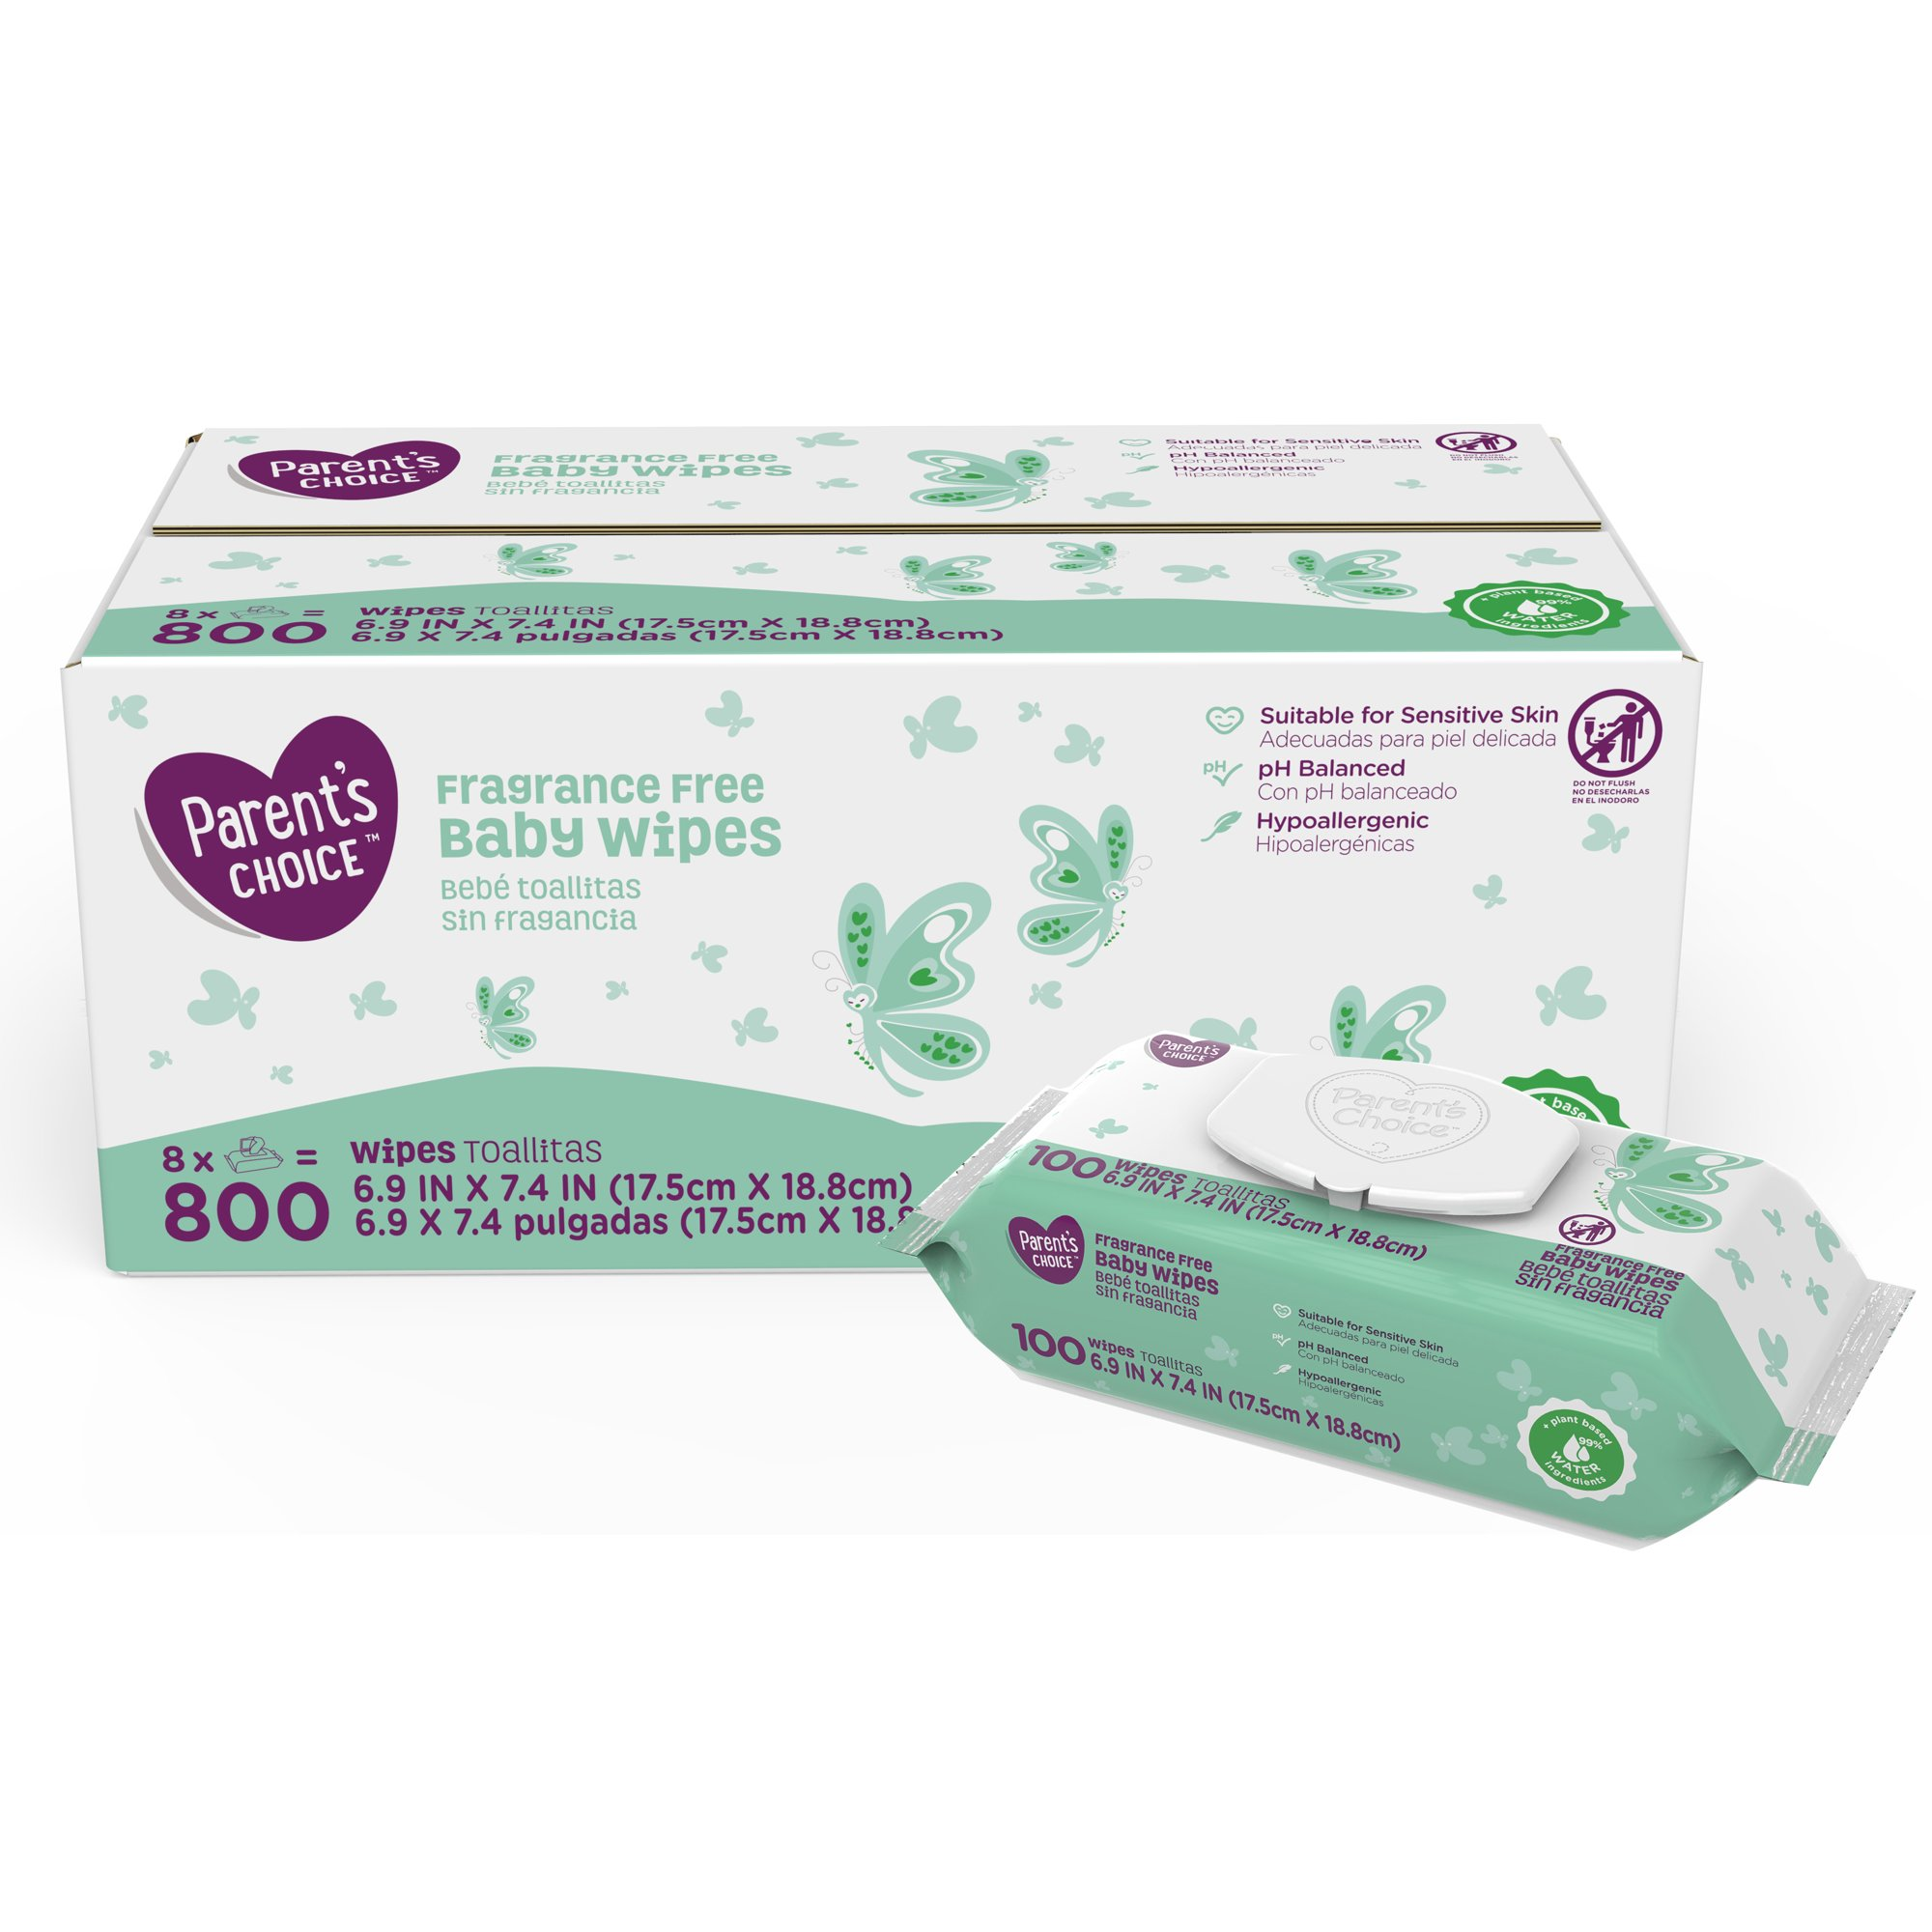 Mustela Stelatopia Emollient Cream 200ml Free Travel Size 10ml Source Parents Choice Fragrance Baby Wipes Choose Your Count